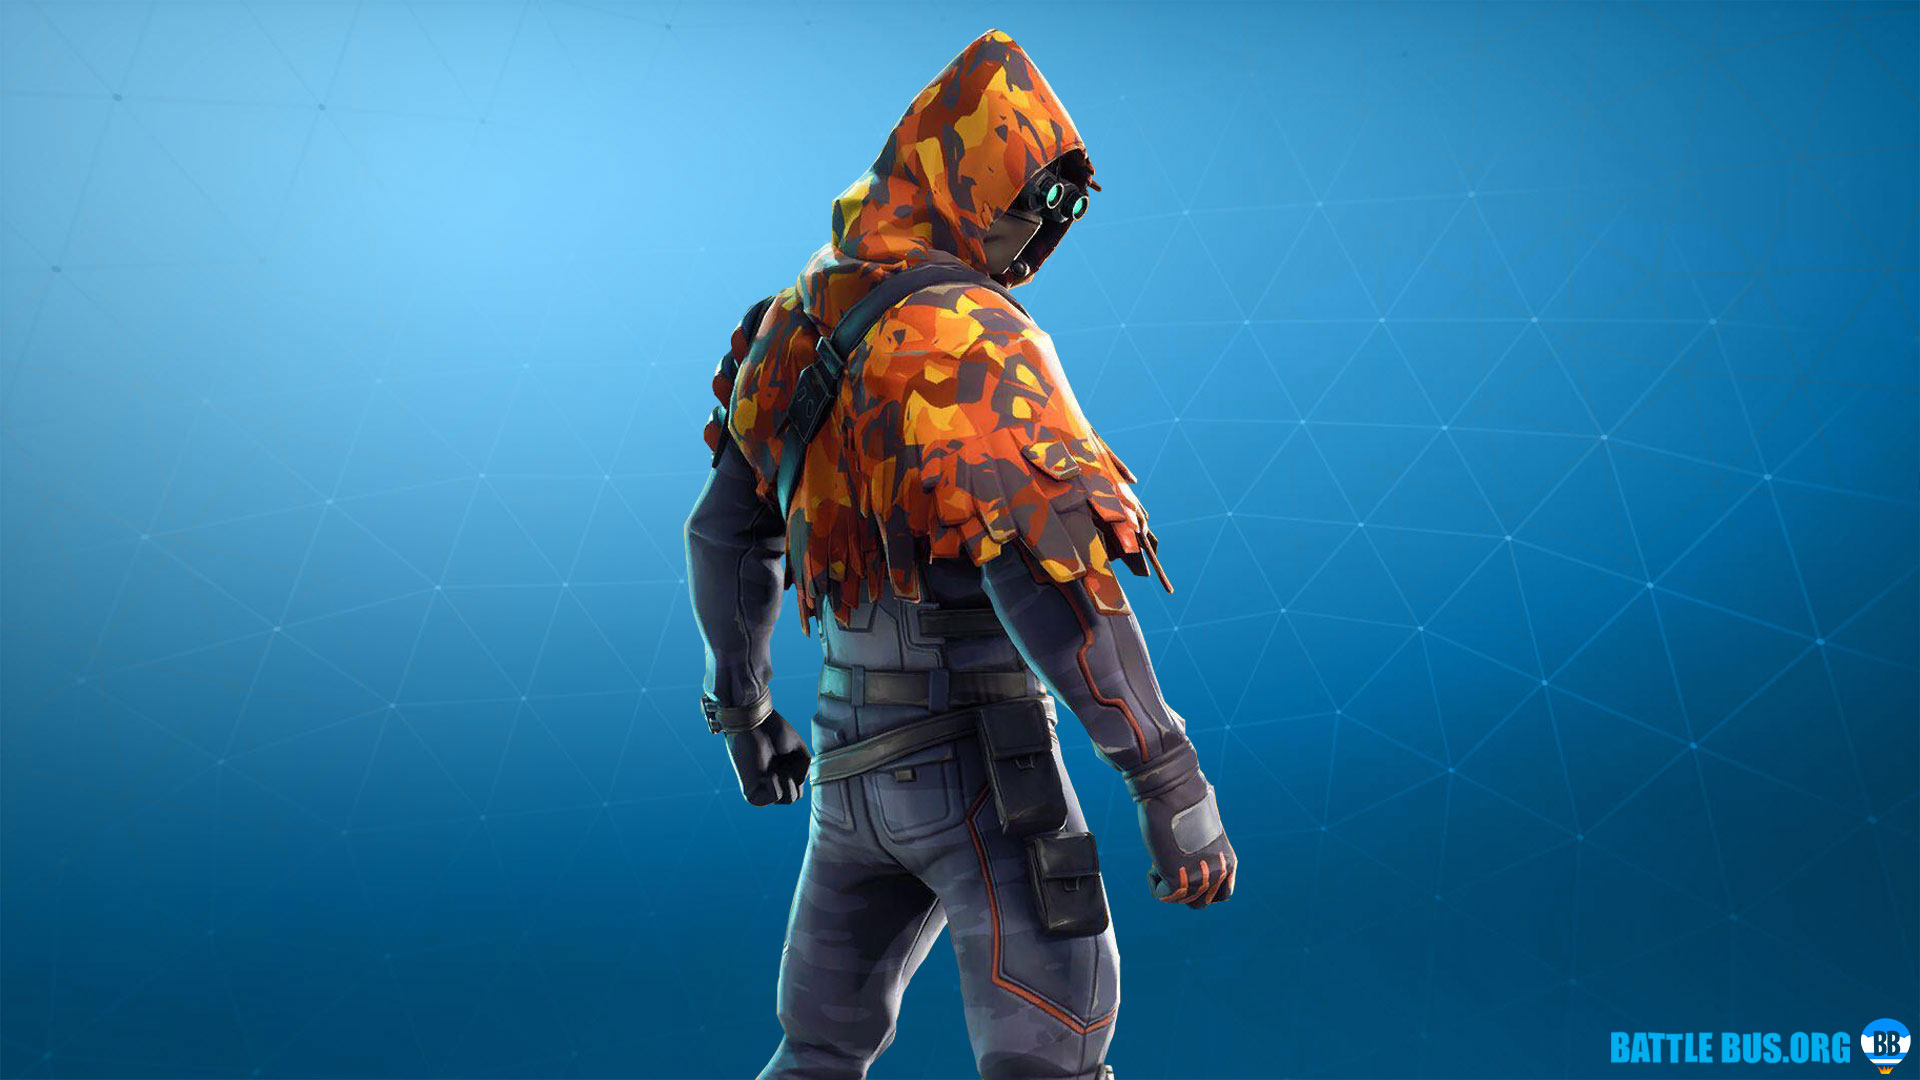 download New Ranged Recon Set Longshot and Insight Fortnite 1920x1080